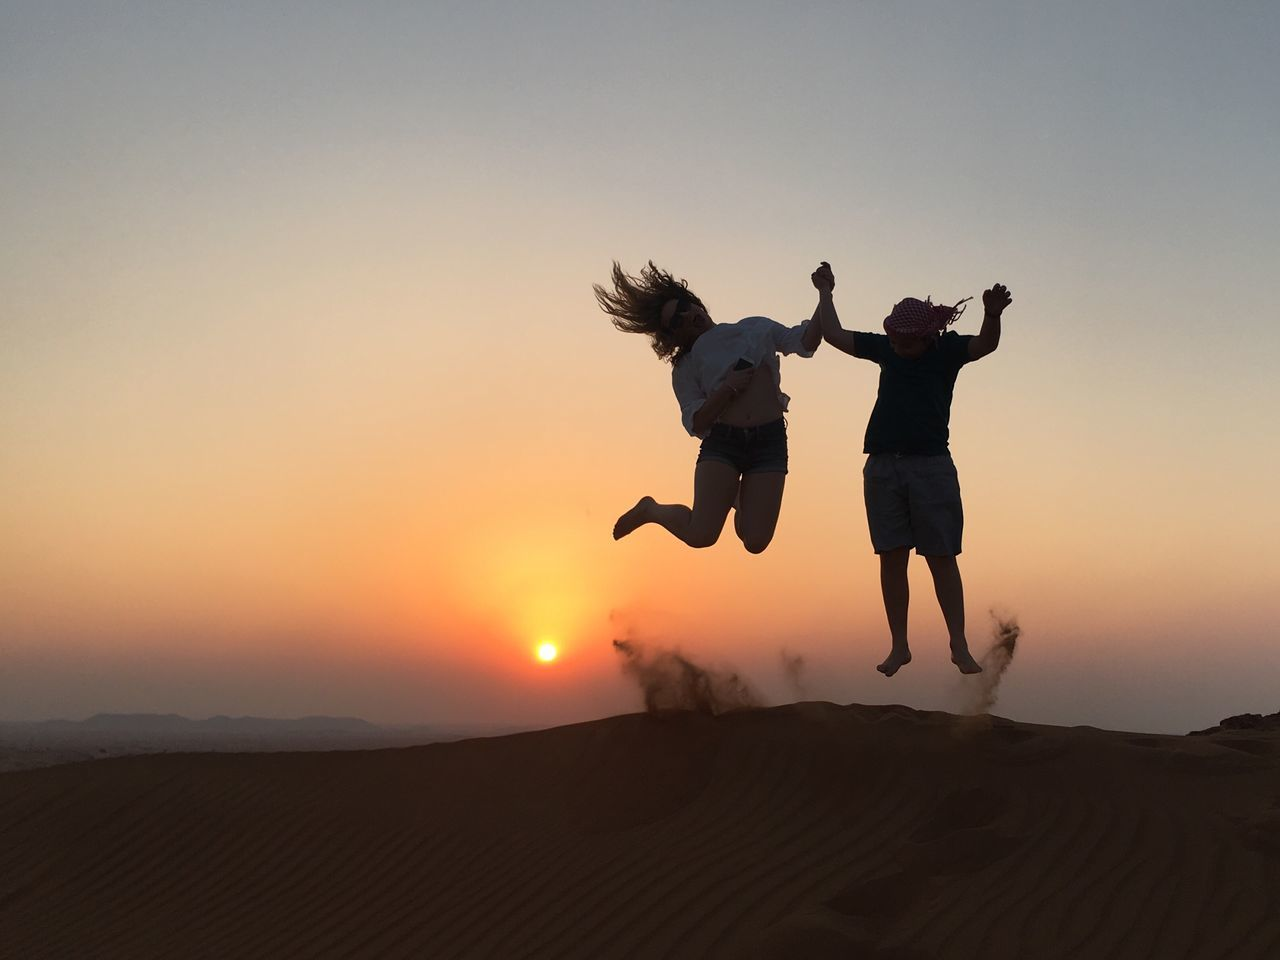 Adh Dhayd 🇪🇭 Sunset Two People Full Length Mid-air Jumping Young Adult Leisure Activity Real People Lifestyles Motion Women Men Outdoors Silhouette Landscape Young Women Nature Adult Adults Only Sky Dubai Likesforlikes Likeforlike Photography